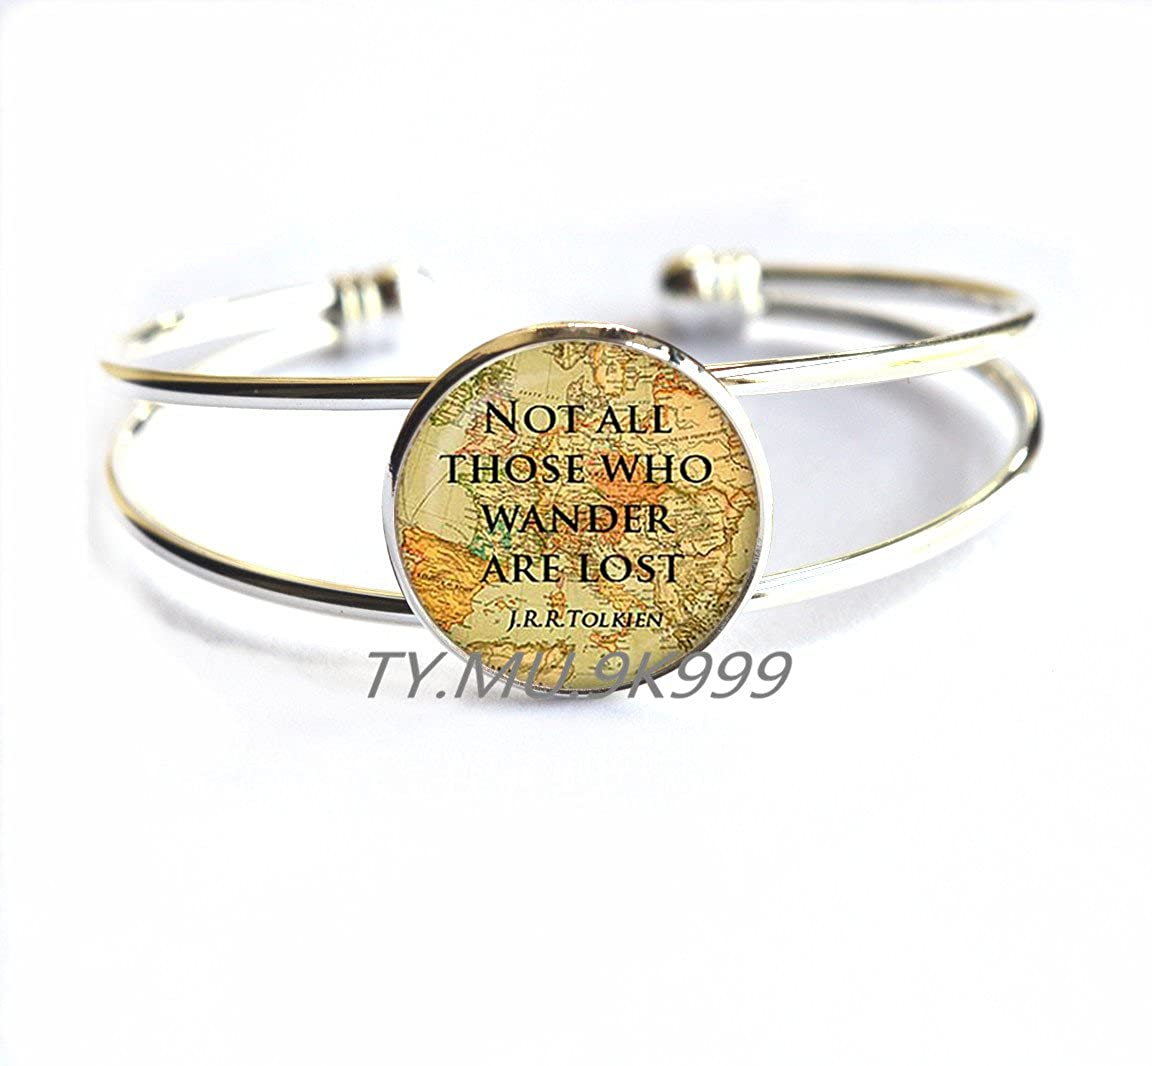 Quote Bracelet Inspirational Jewelry.Y008 Yao0dianxku Not All Those Who Wander Are Lost Quote Bracelet Inspirational Jewelry Inspiring Jewelry